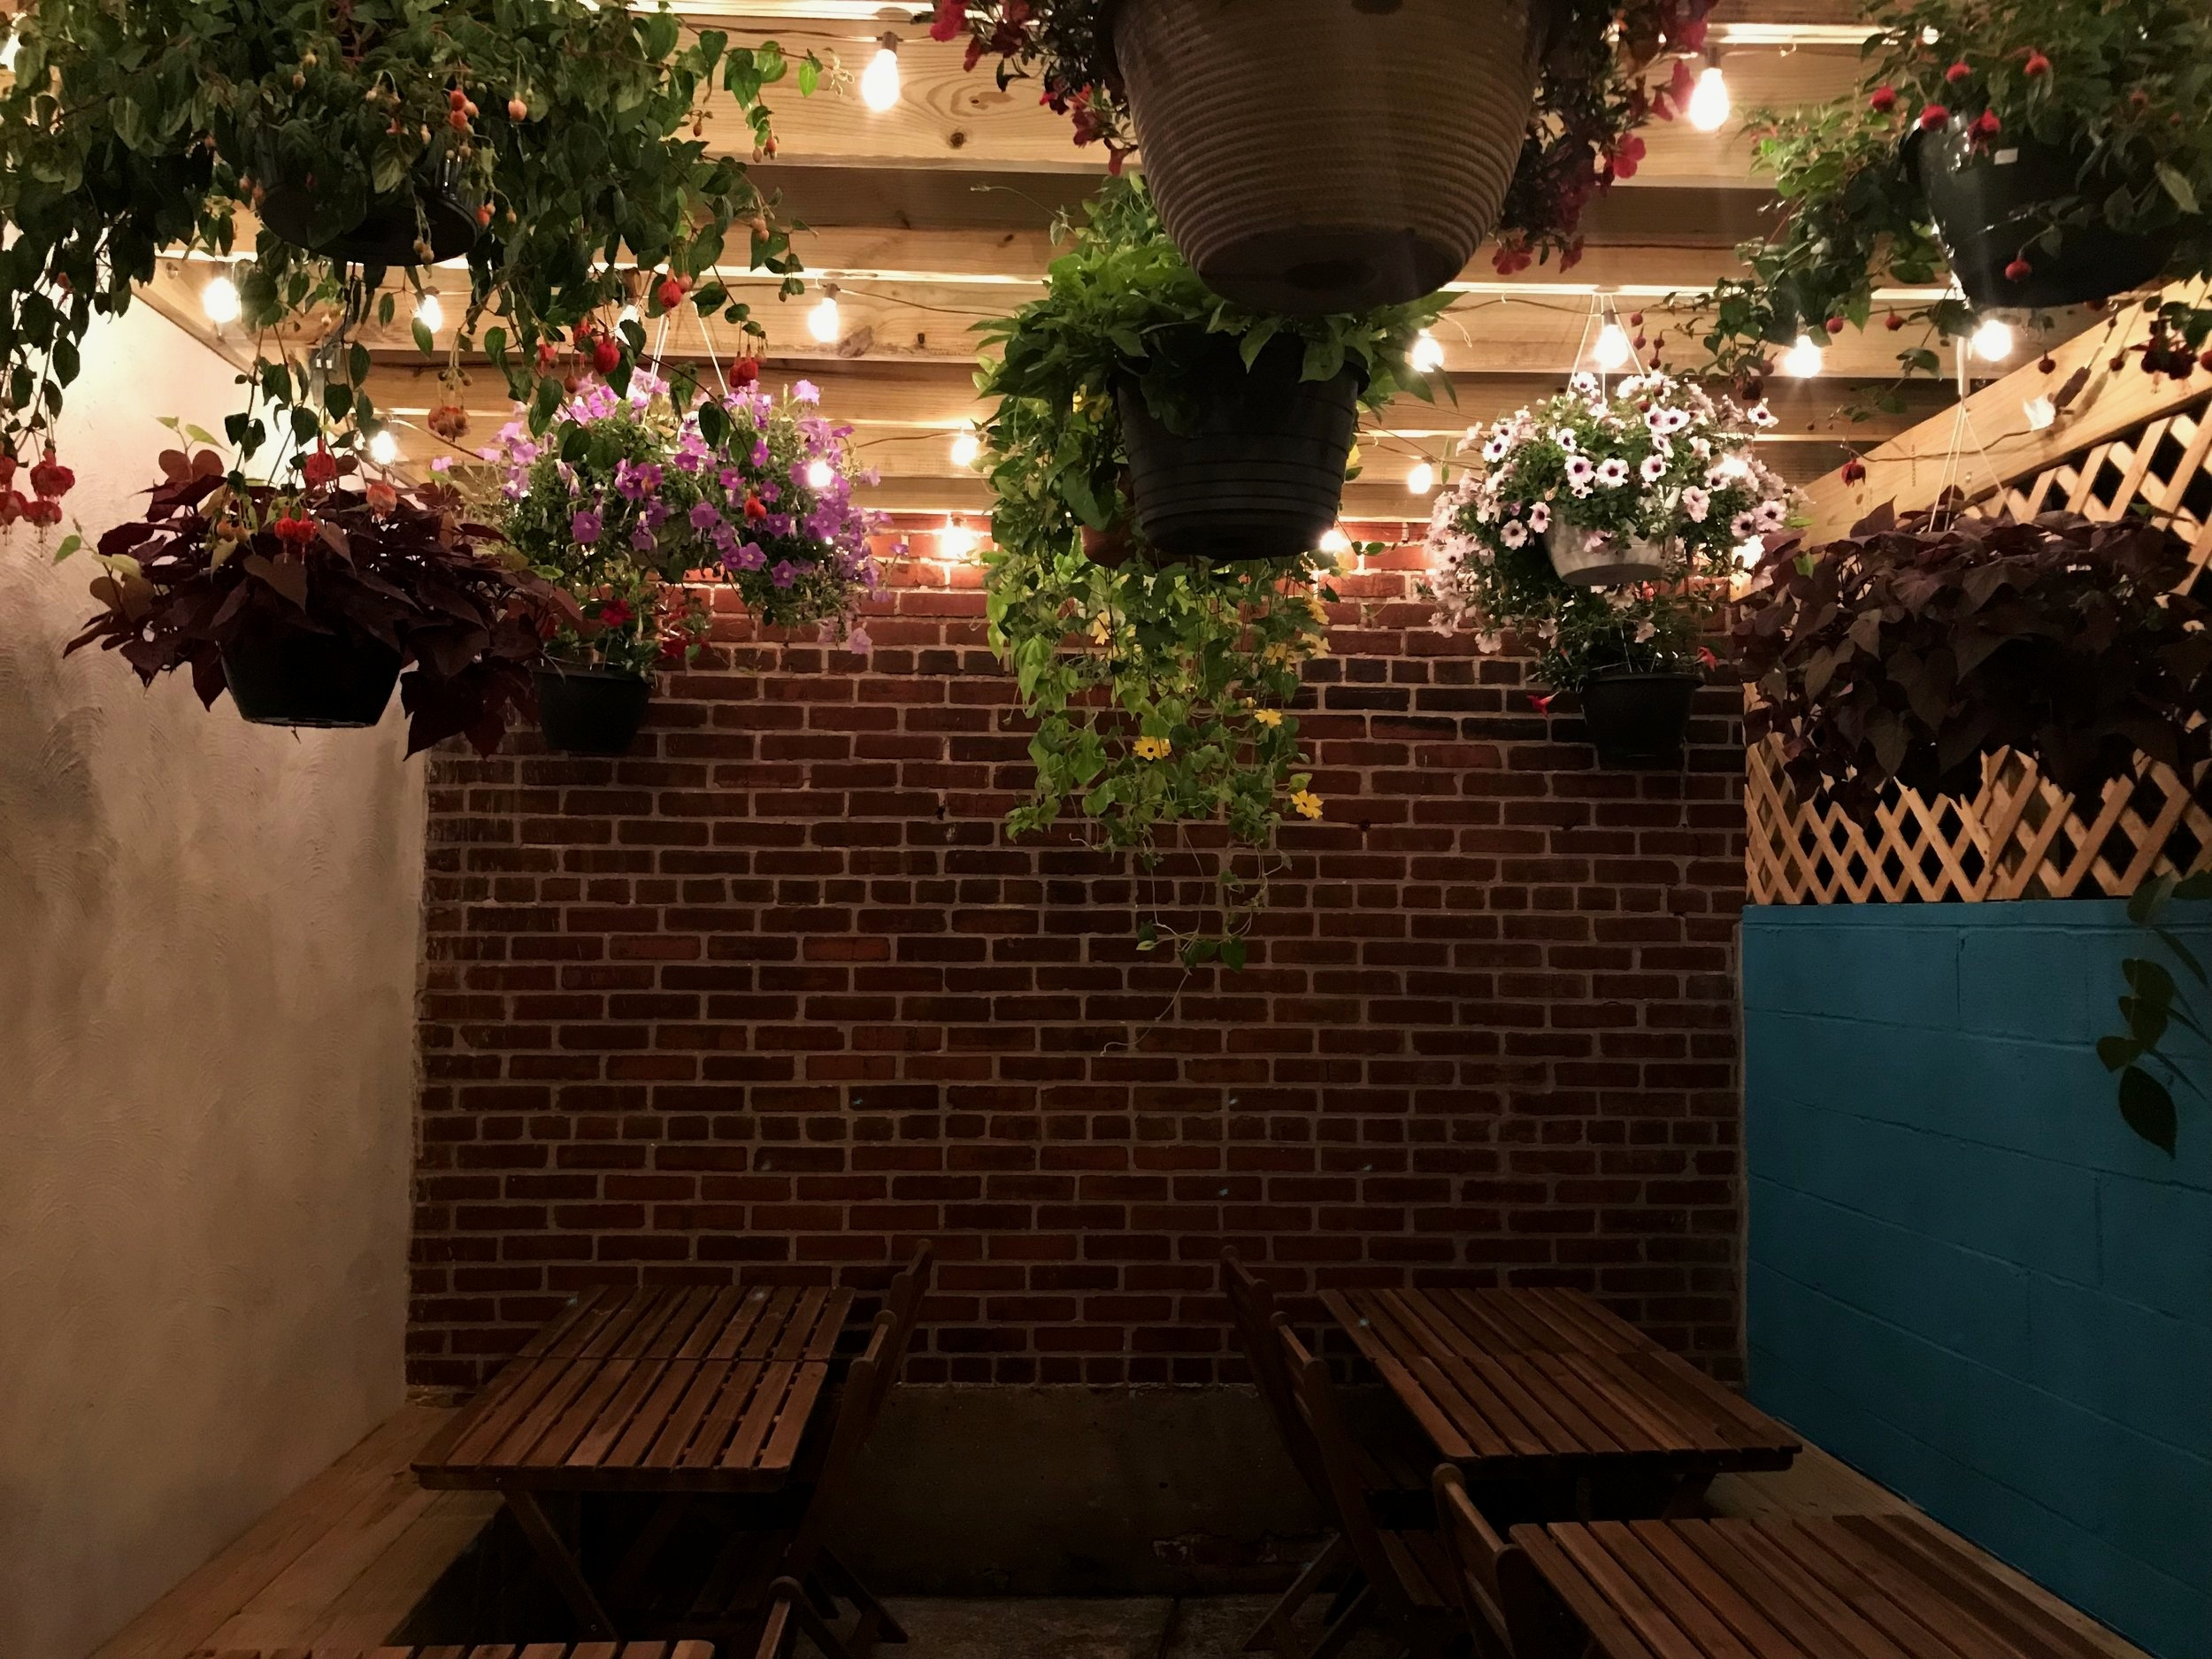 backyard patio open - perfect for a summer party, available for groups of 10-16. Call or email for menus and availability